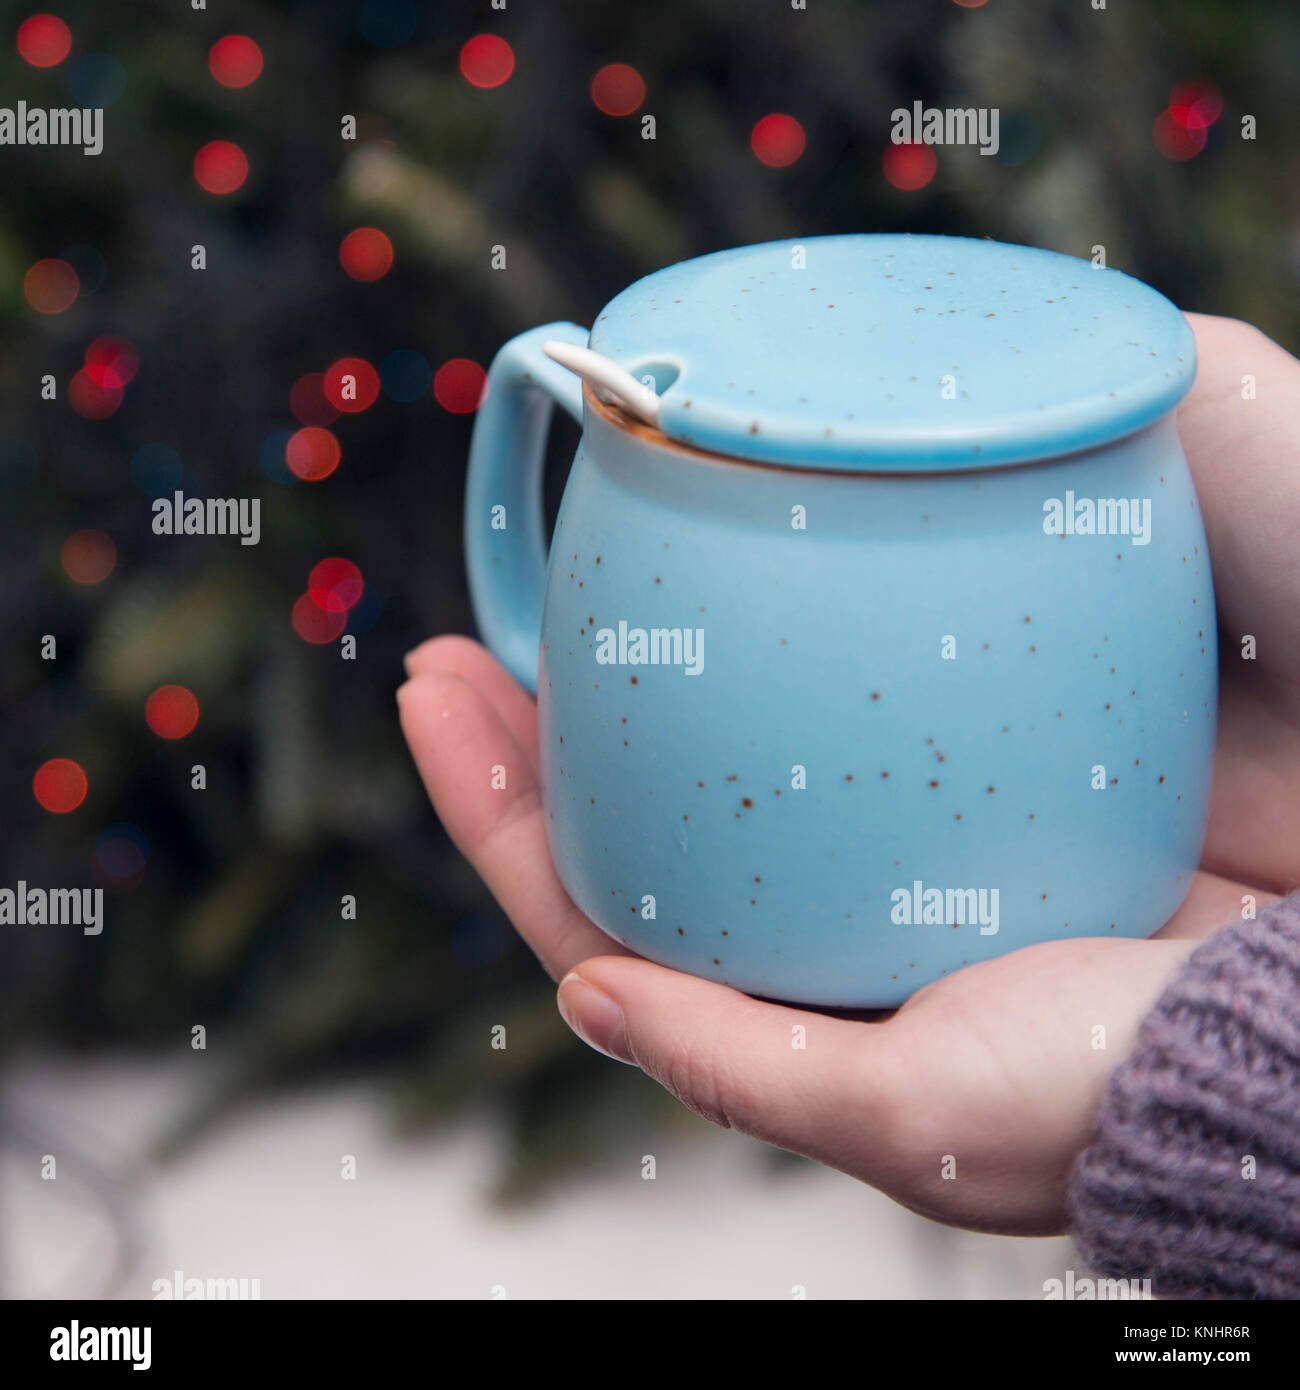 Hands holding a sugar bowl against blurred Christmas tree background - Stock Image